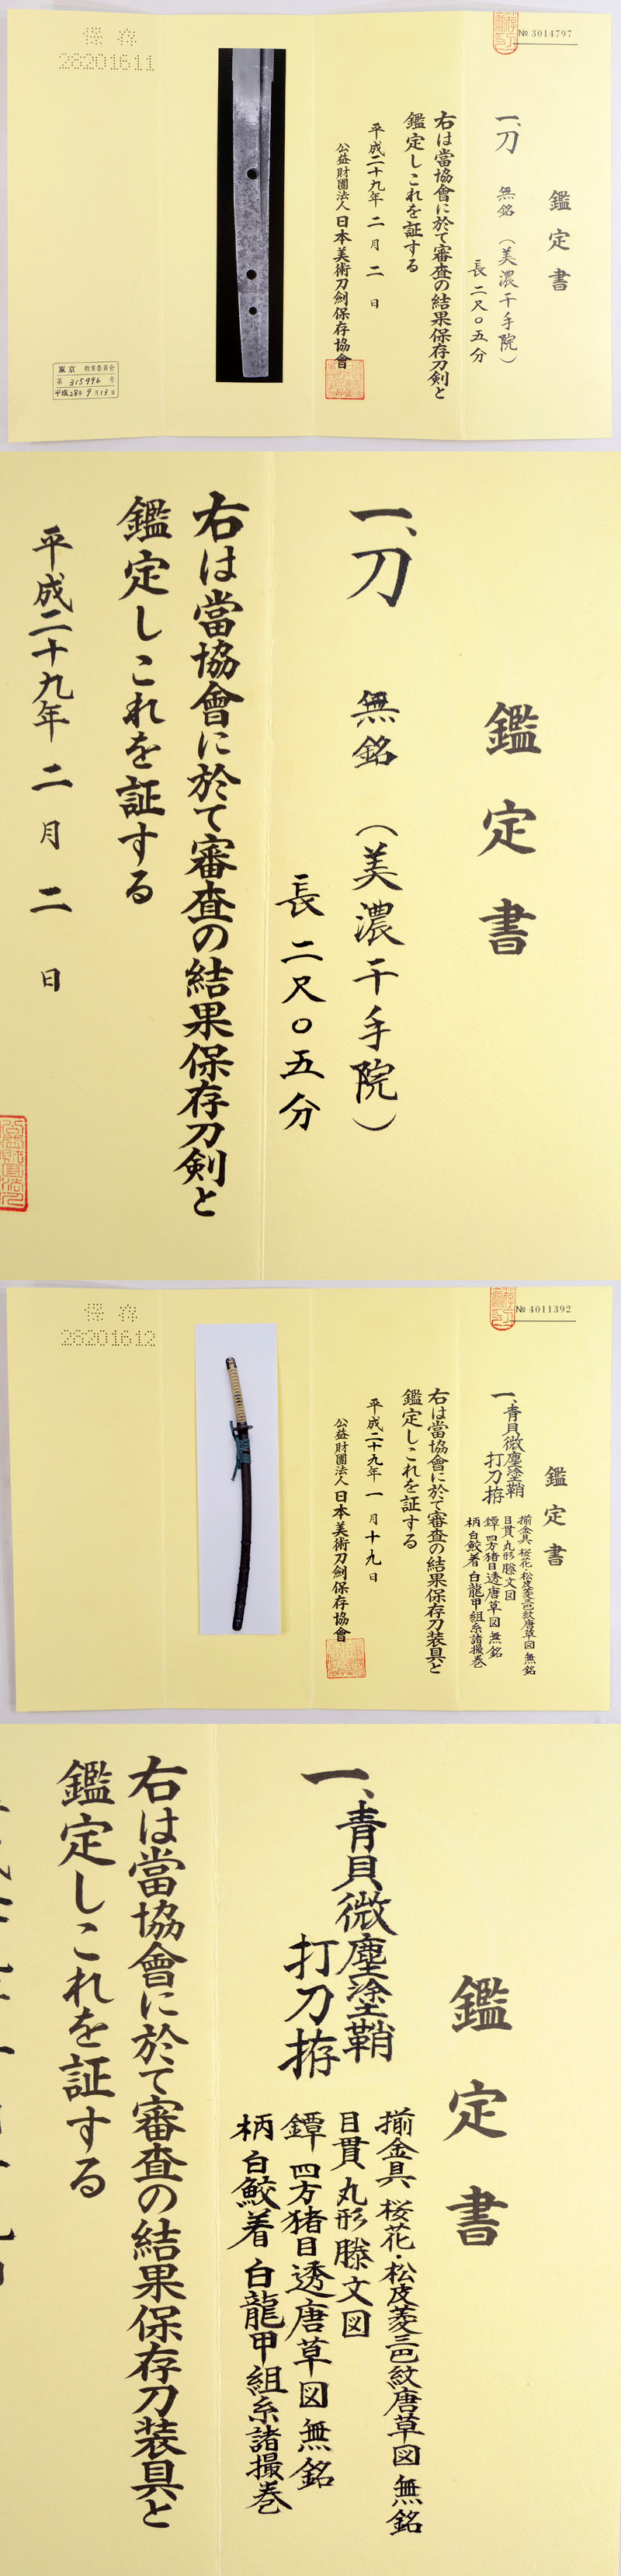 無銘(美濃千手院) Picture of Certificate